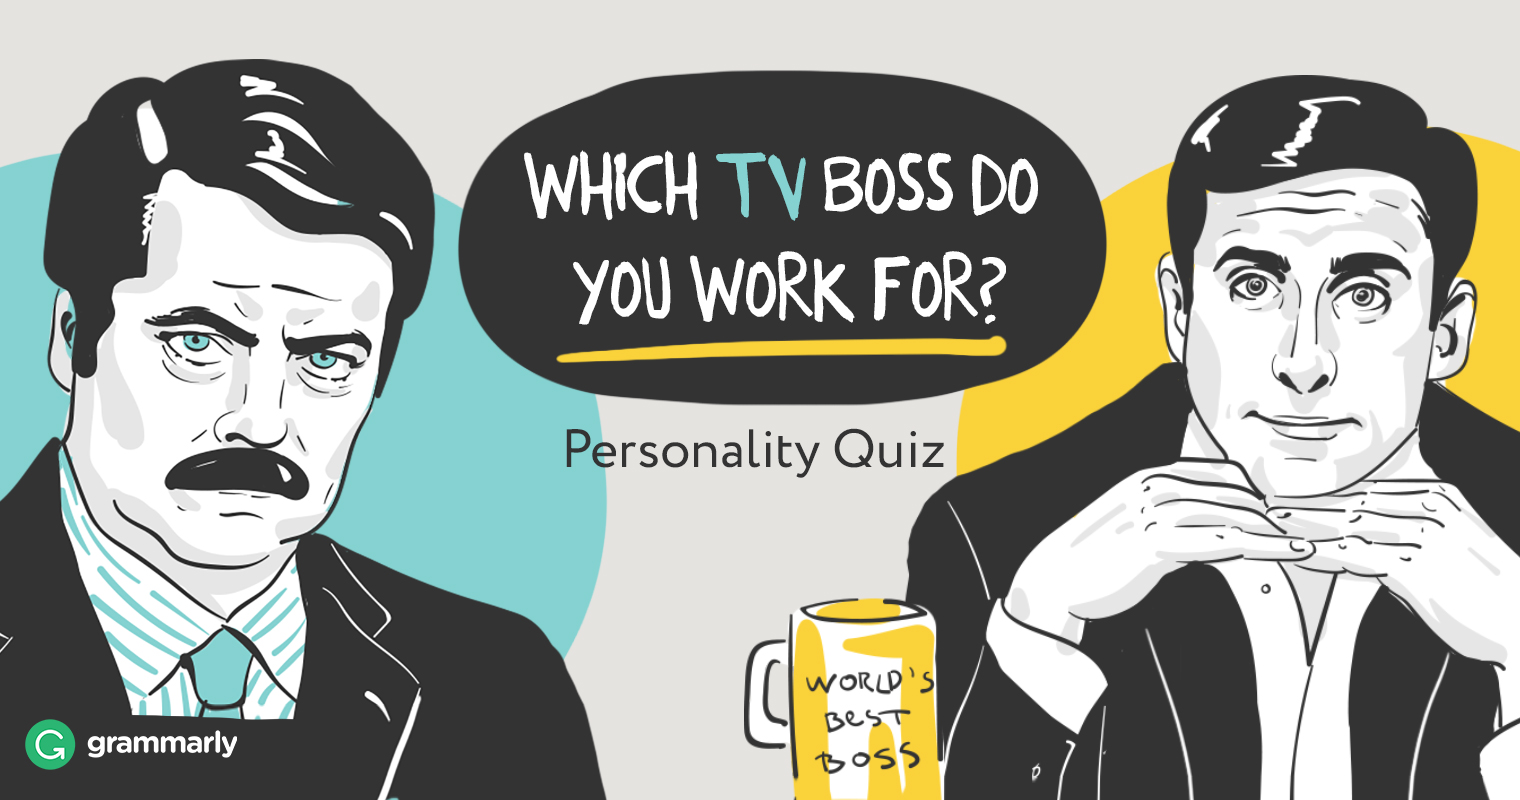 Which TV Boss Do You Work For?